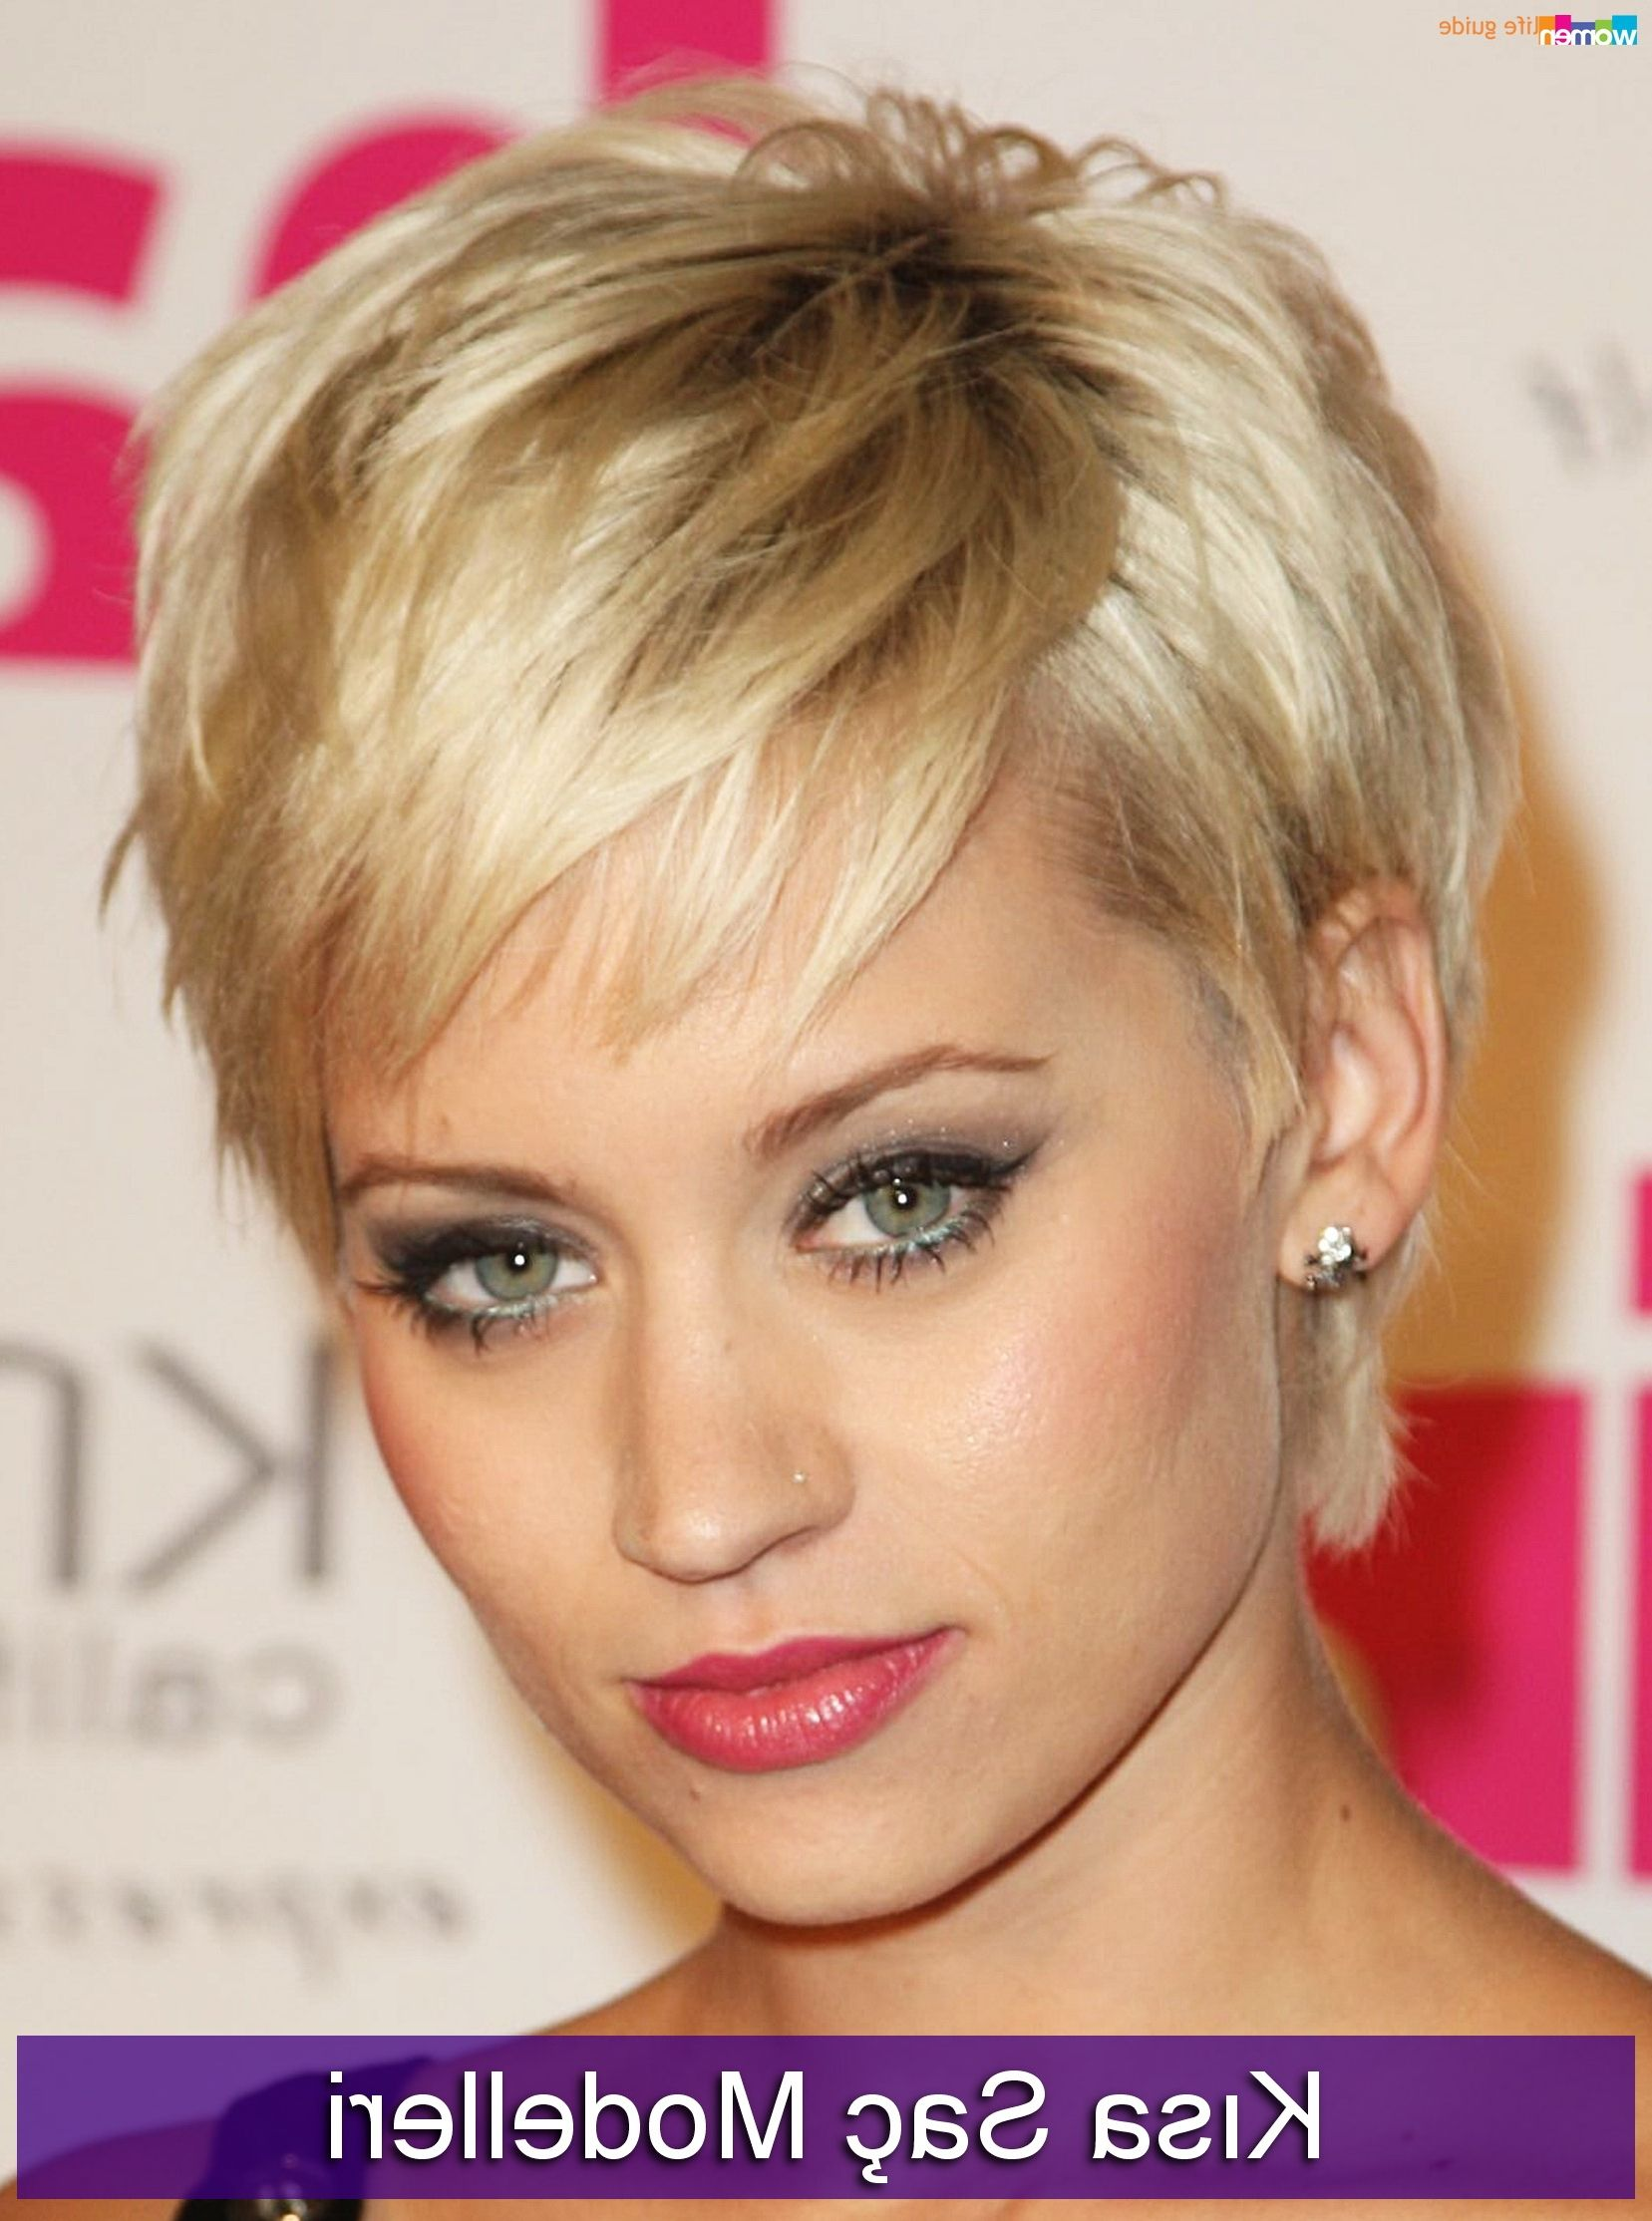 Stupendous Short Hairstyles Shorts And Hairstyles On Pinterest Short Hairstyles Gunalazisus